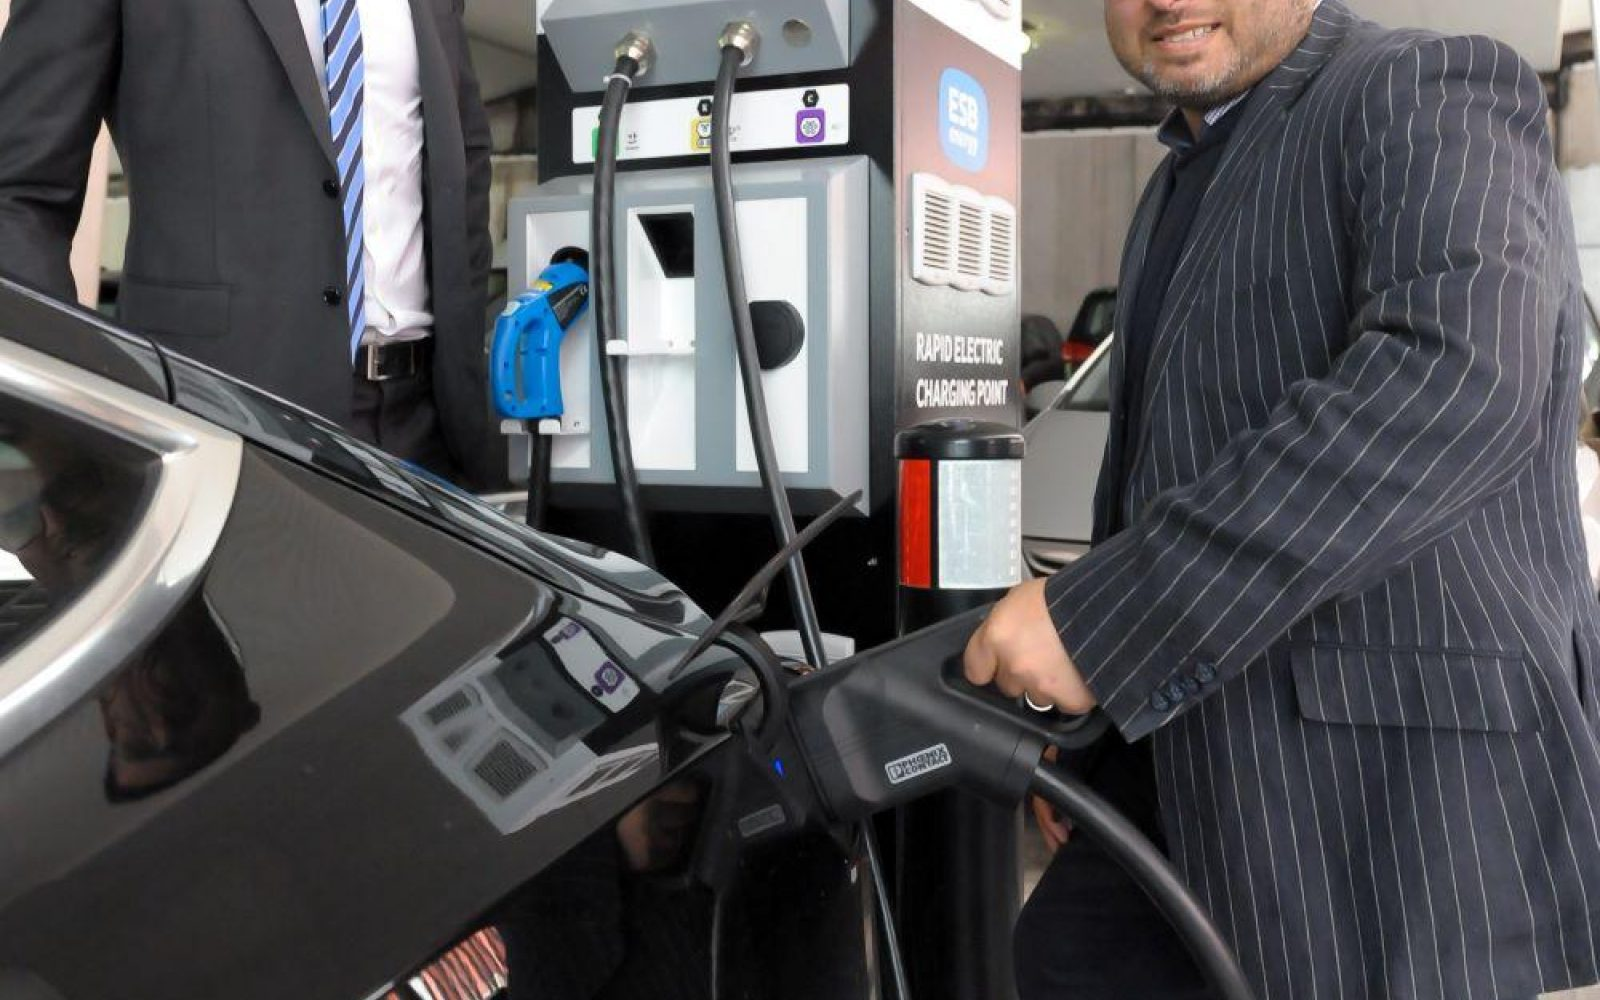 The council is aiming to have over 9,000 chargepoints installed in Birmingham by 2030. Image: Birmingham City Council.